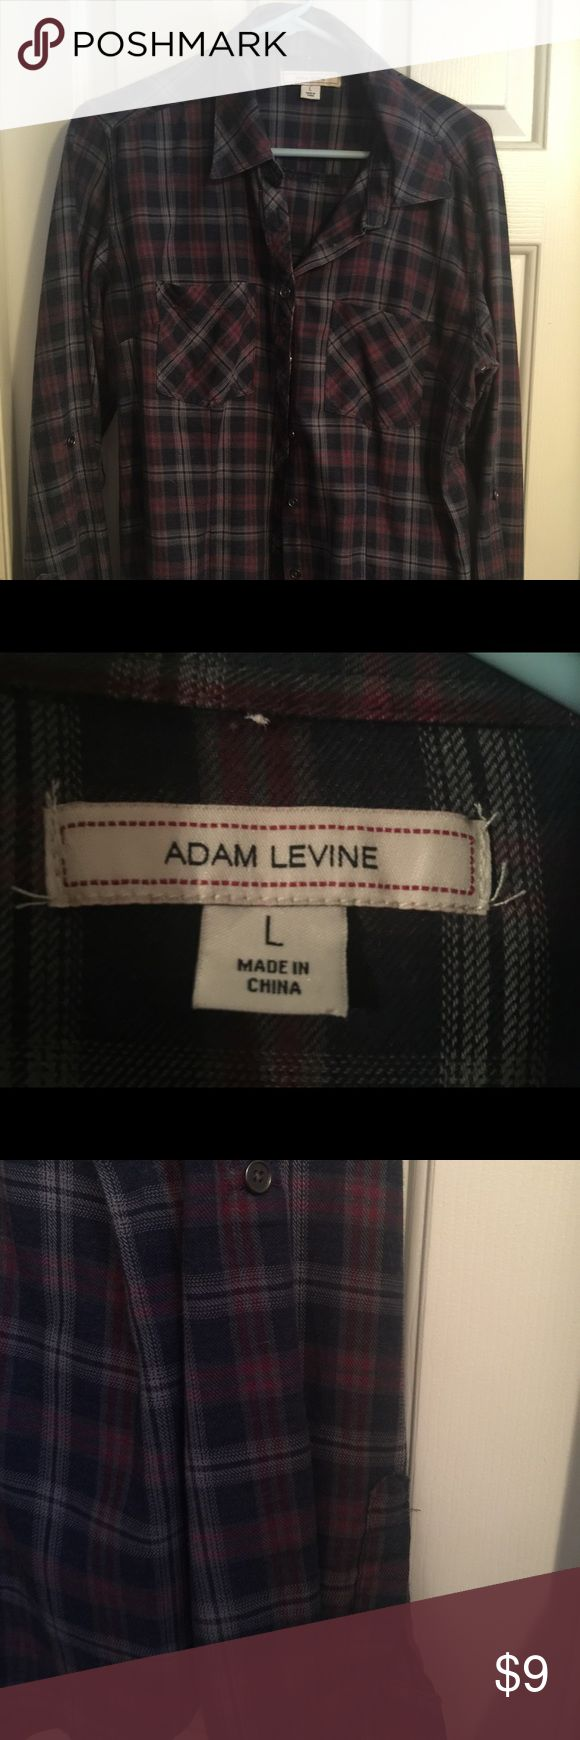 Adam Levine Flannel Style Shirt Women's Size Large Adam Levine Flannel Style Shirt Navy and reddish pink plaid only worn once Adam Levine Tops Button Down Shirts